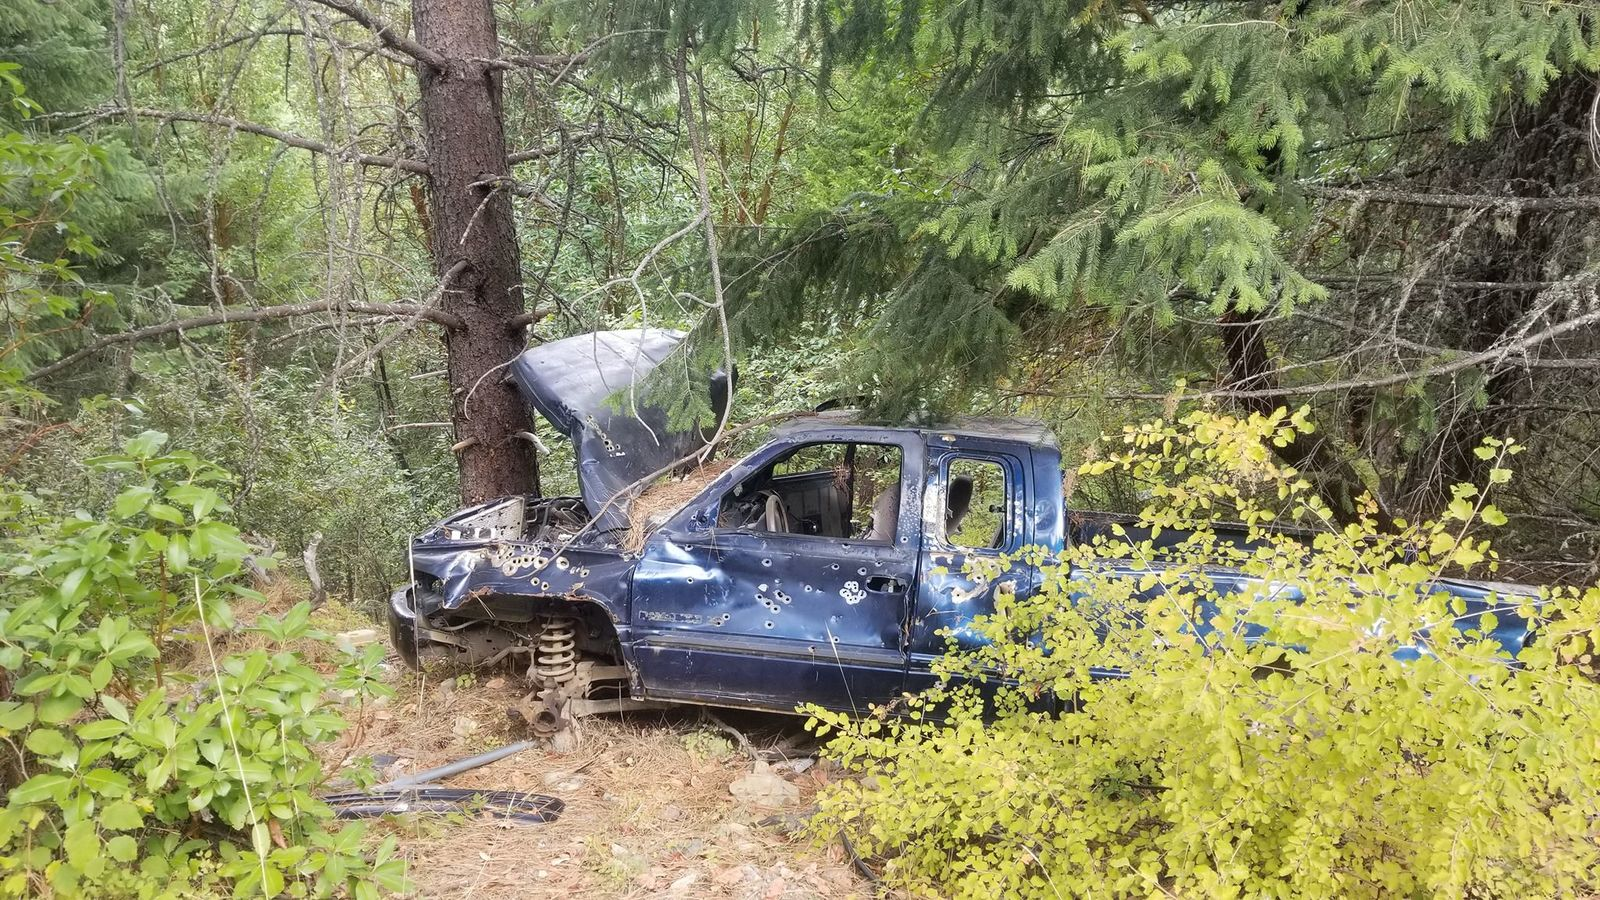 A truck that they found dumped in the forest. (Courtesy: Sam Watson){&nbsp;}<p></p>